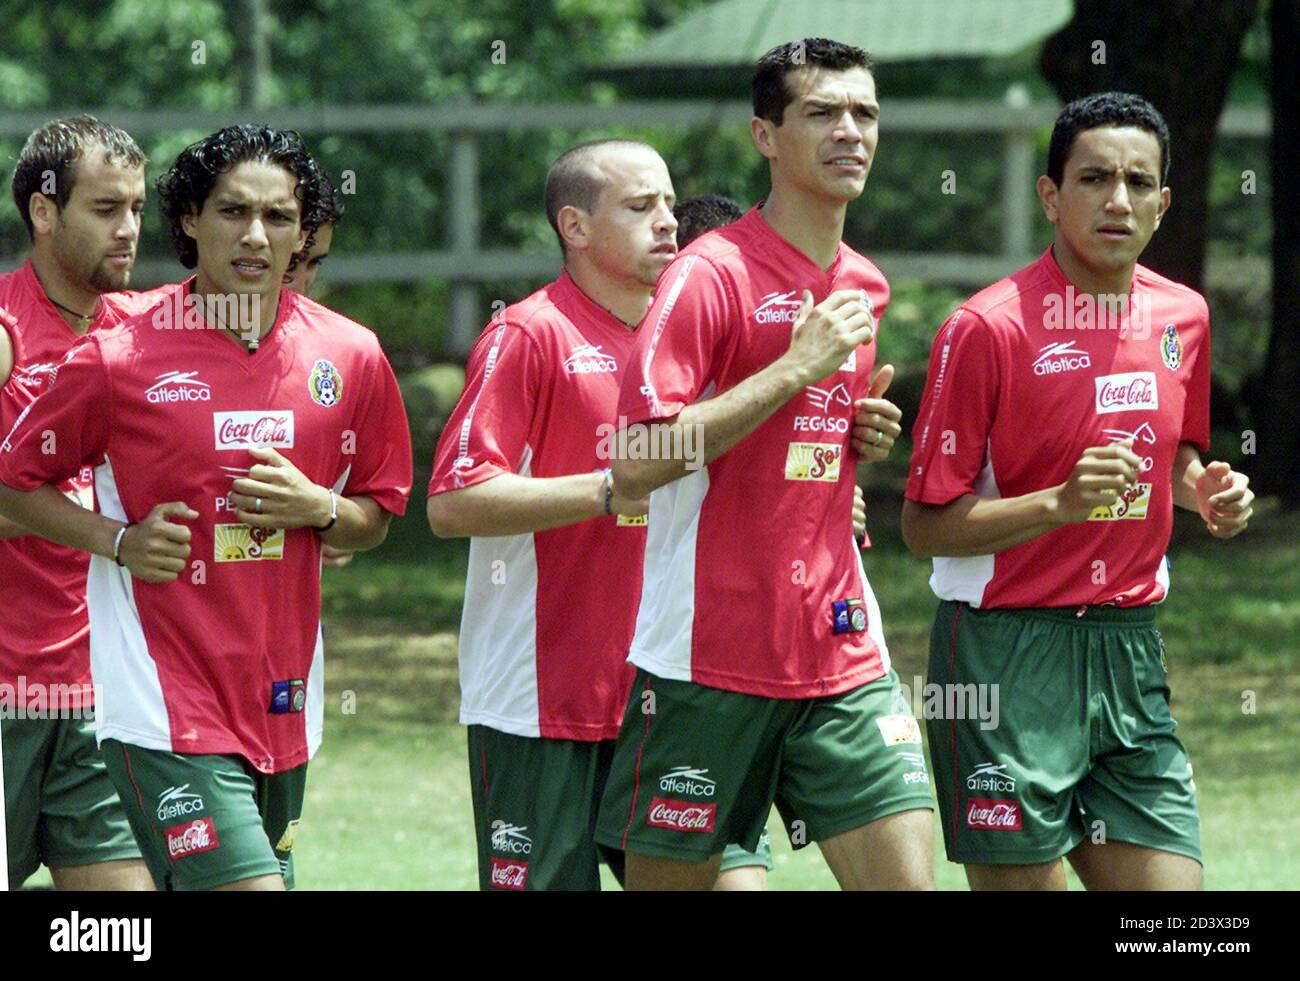 Mexicans (L-R) Johan Rodriguez, Adrian Martinez, Oscar Perez, Jared Borgueti and Ramon Morales jog at the Campestre Club in Cali where the team is staying during the Copa America, July 13, 2001. Mexico upset Brazil in their first match of the tournament and plays Paraguay on July 15.  RR Stock Photo